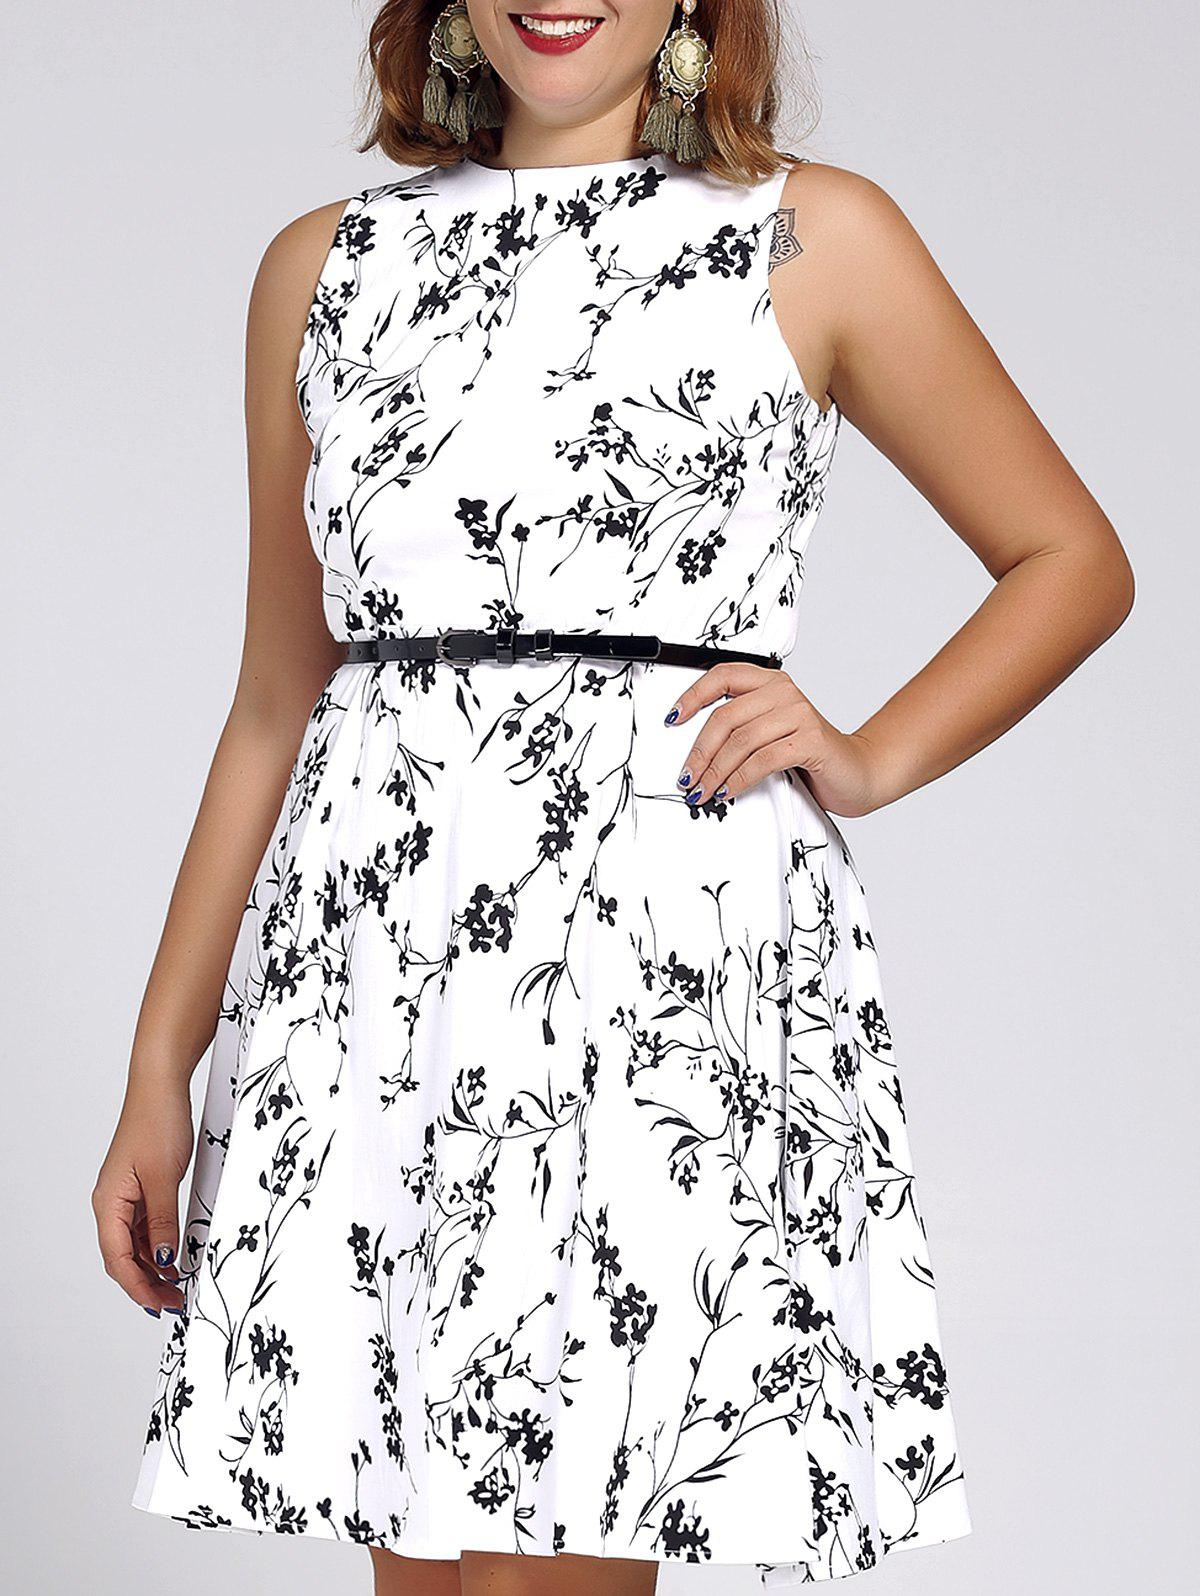 Stylish Round Neck Sleeveless Floral Print Dress For Women цены